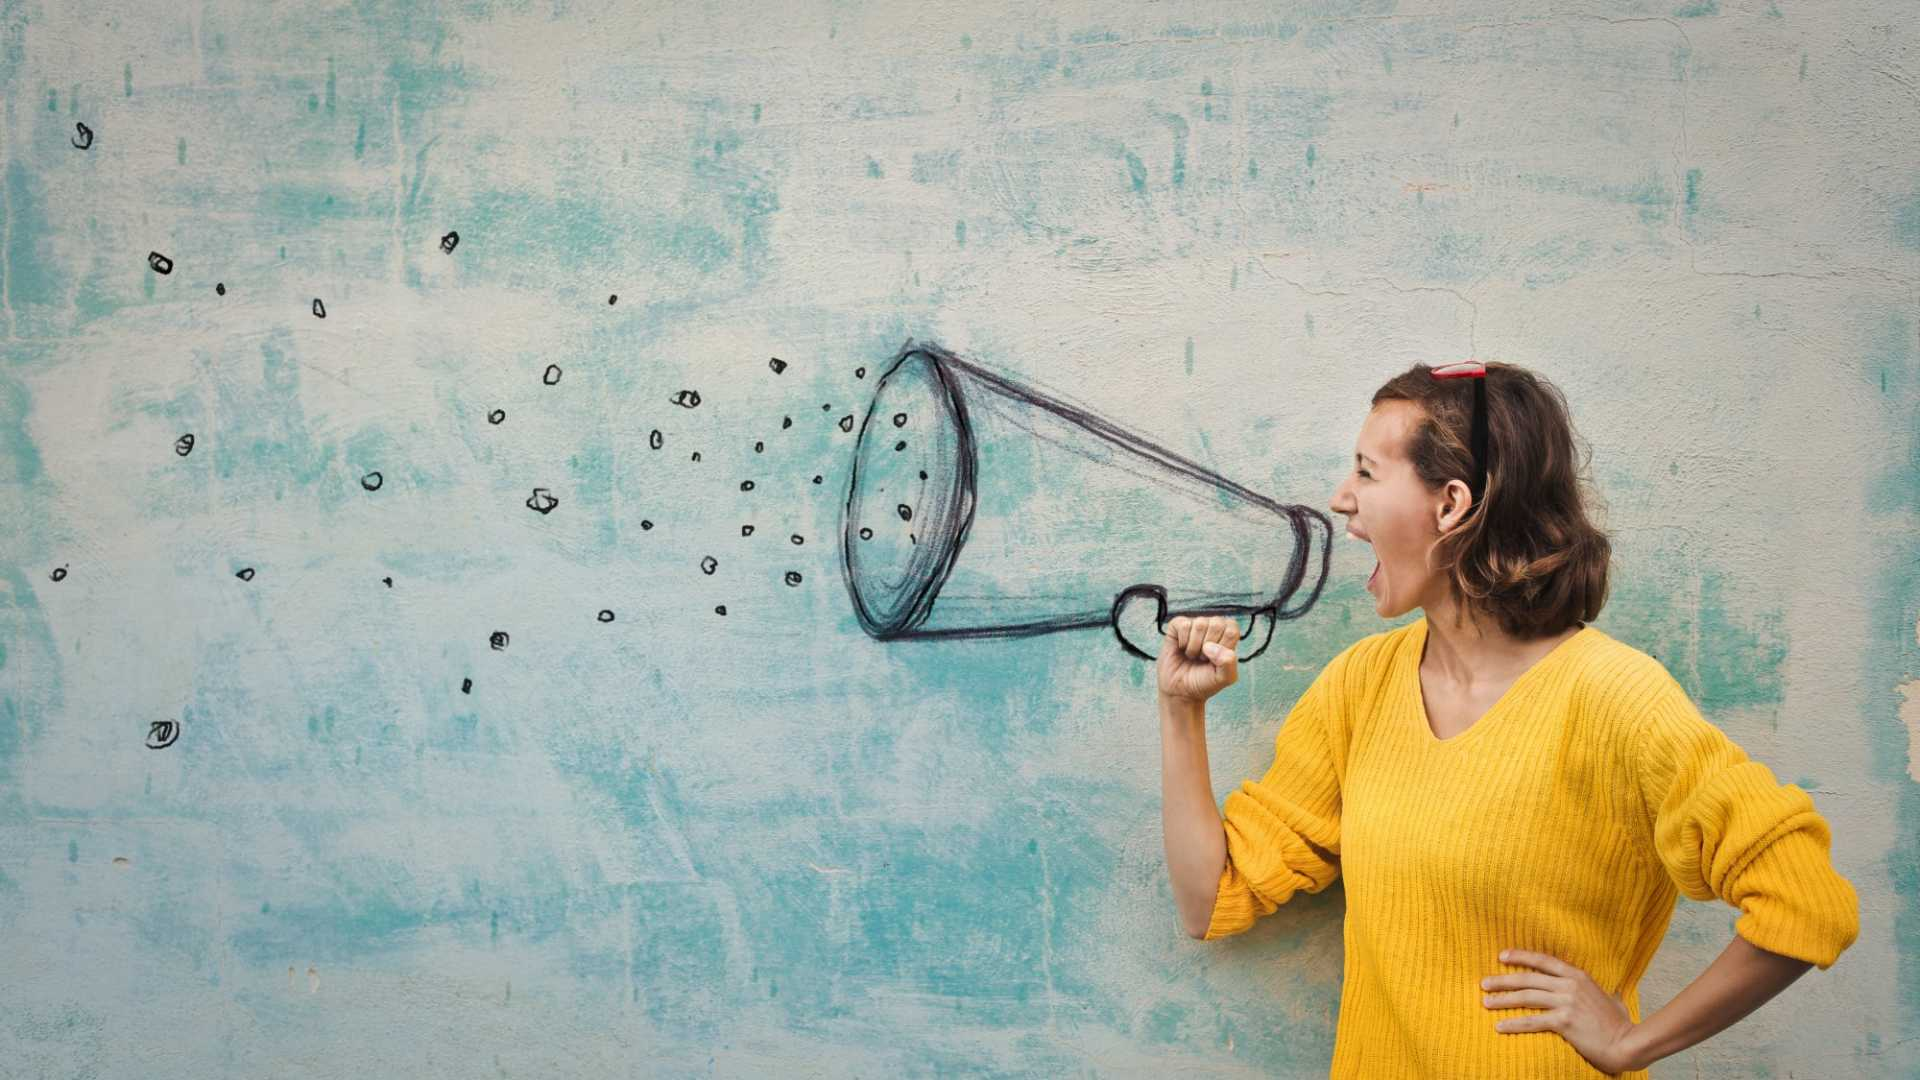 7 Tried-and-True Methods for Improving Your Startup's PR Efforts